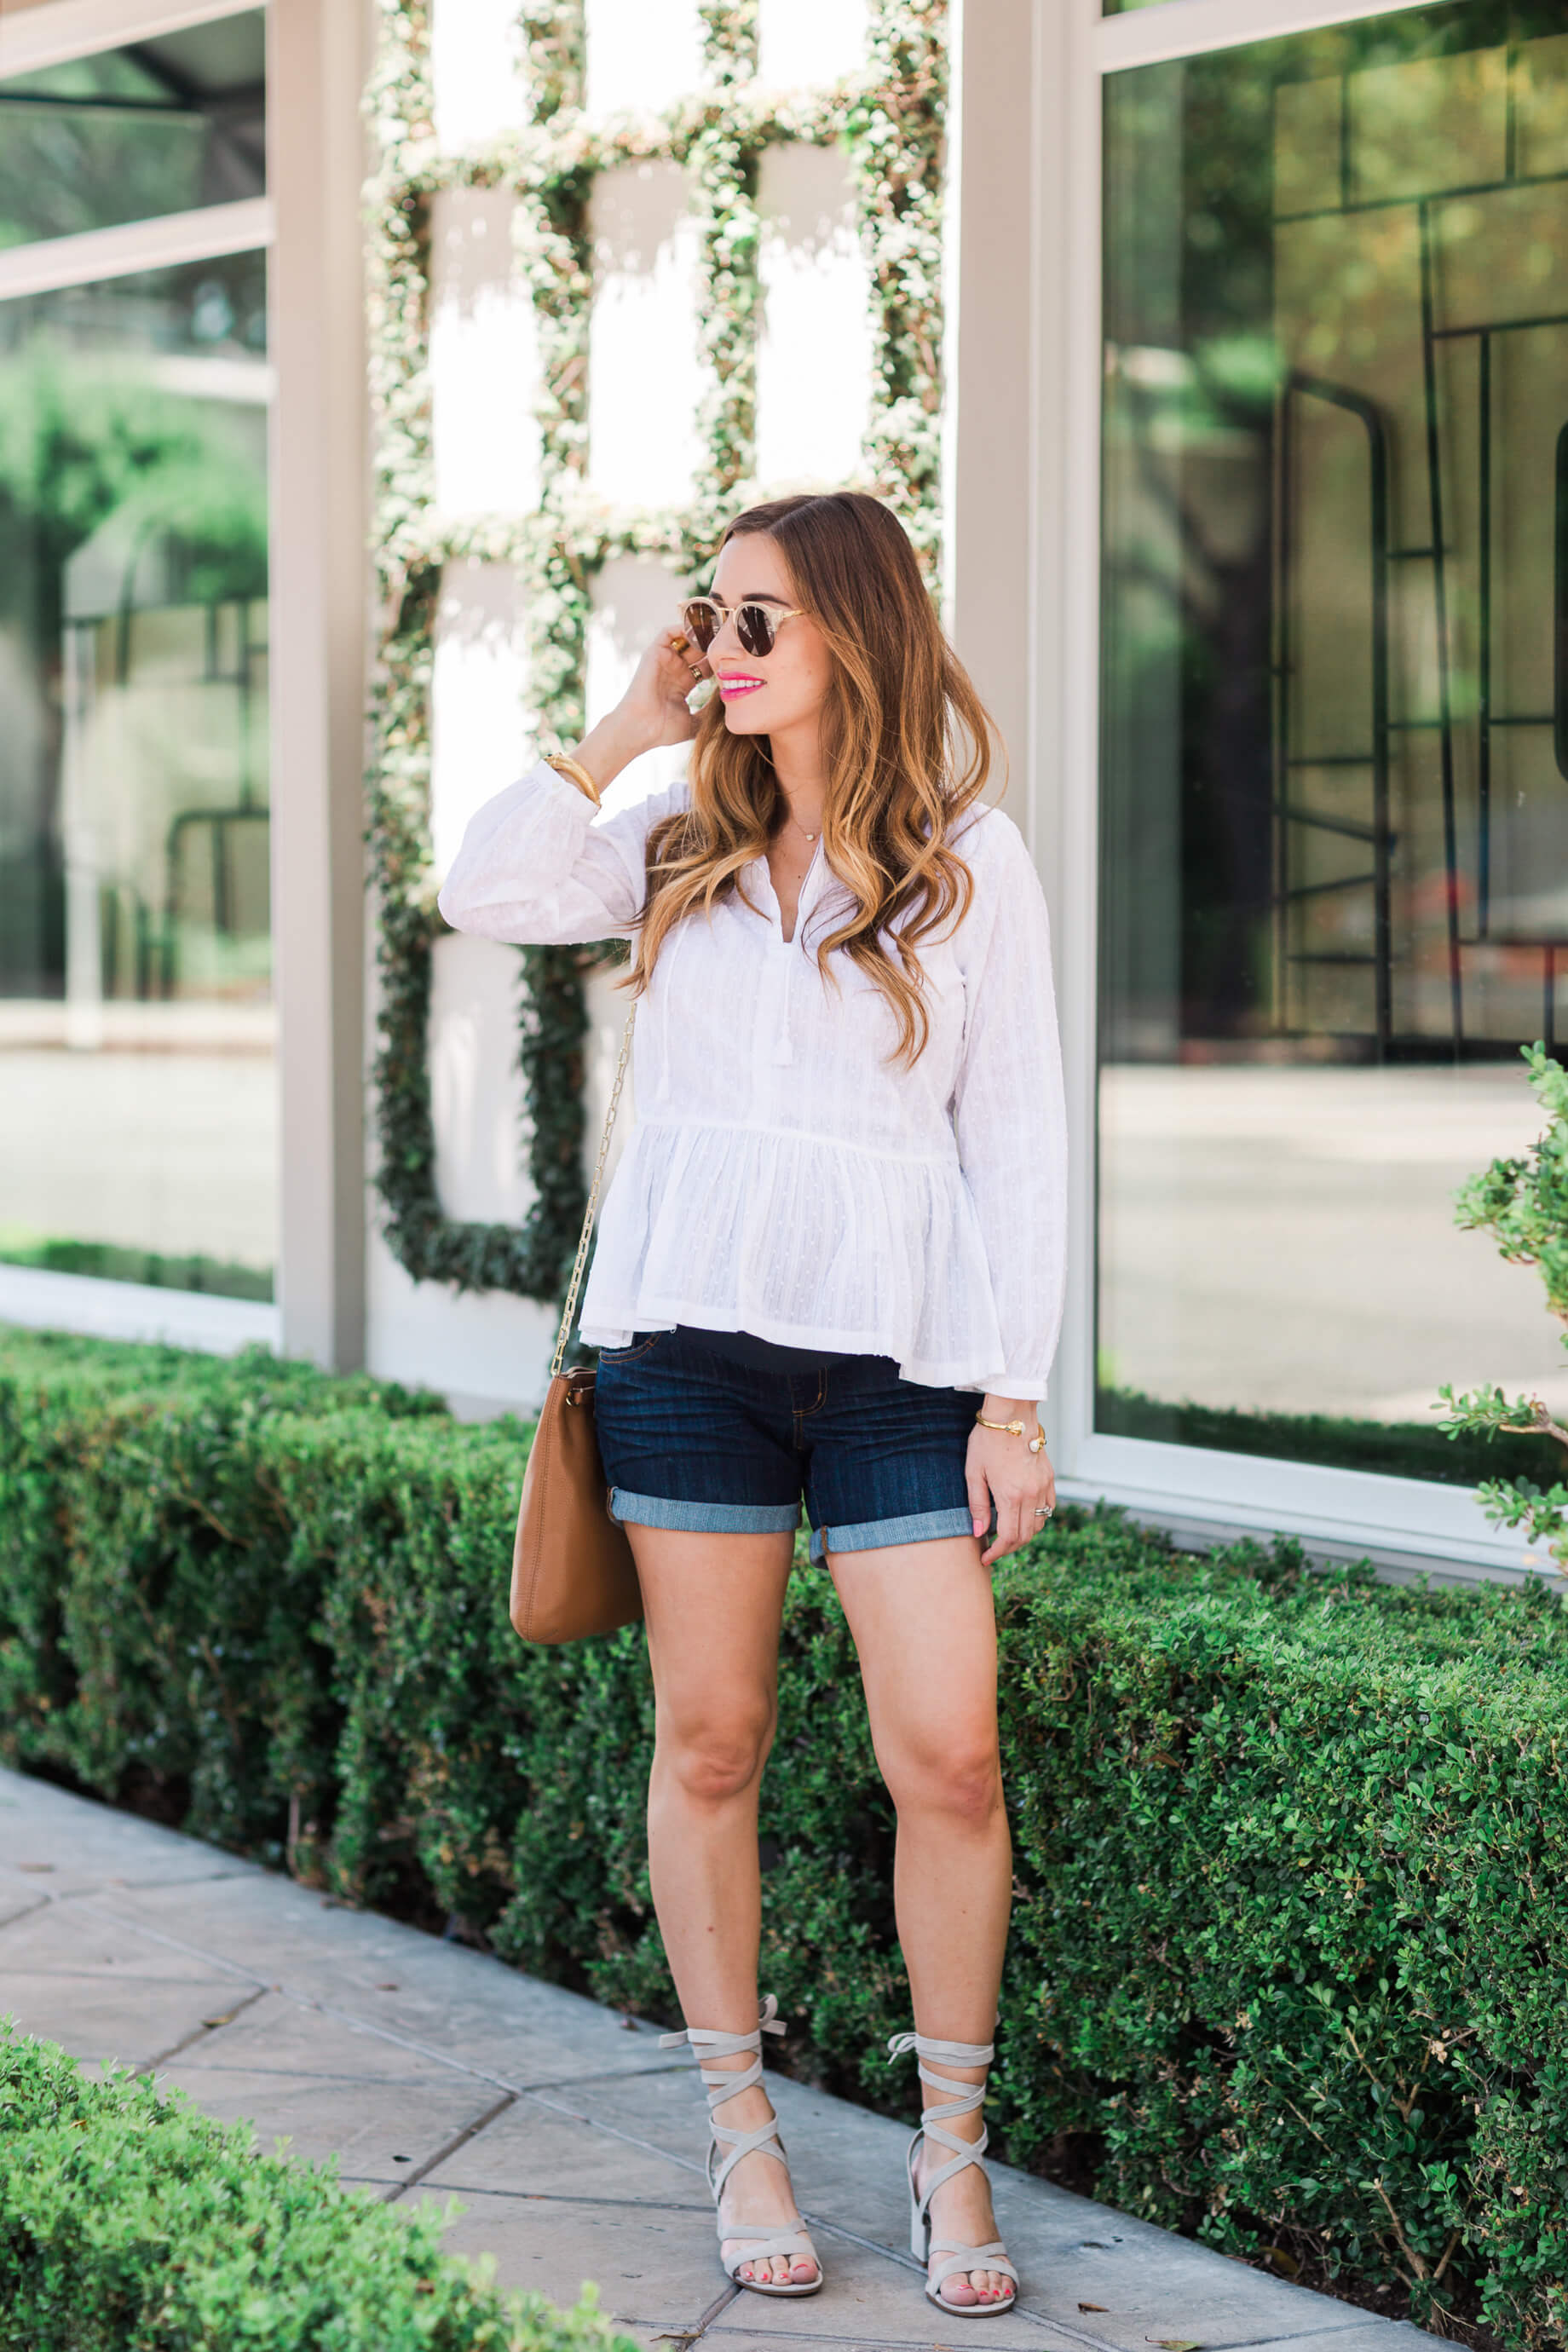 Styling a White Peplum Top with Shorts